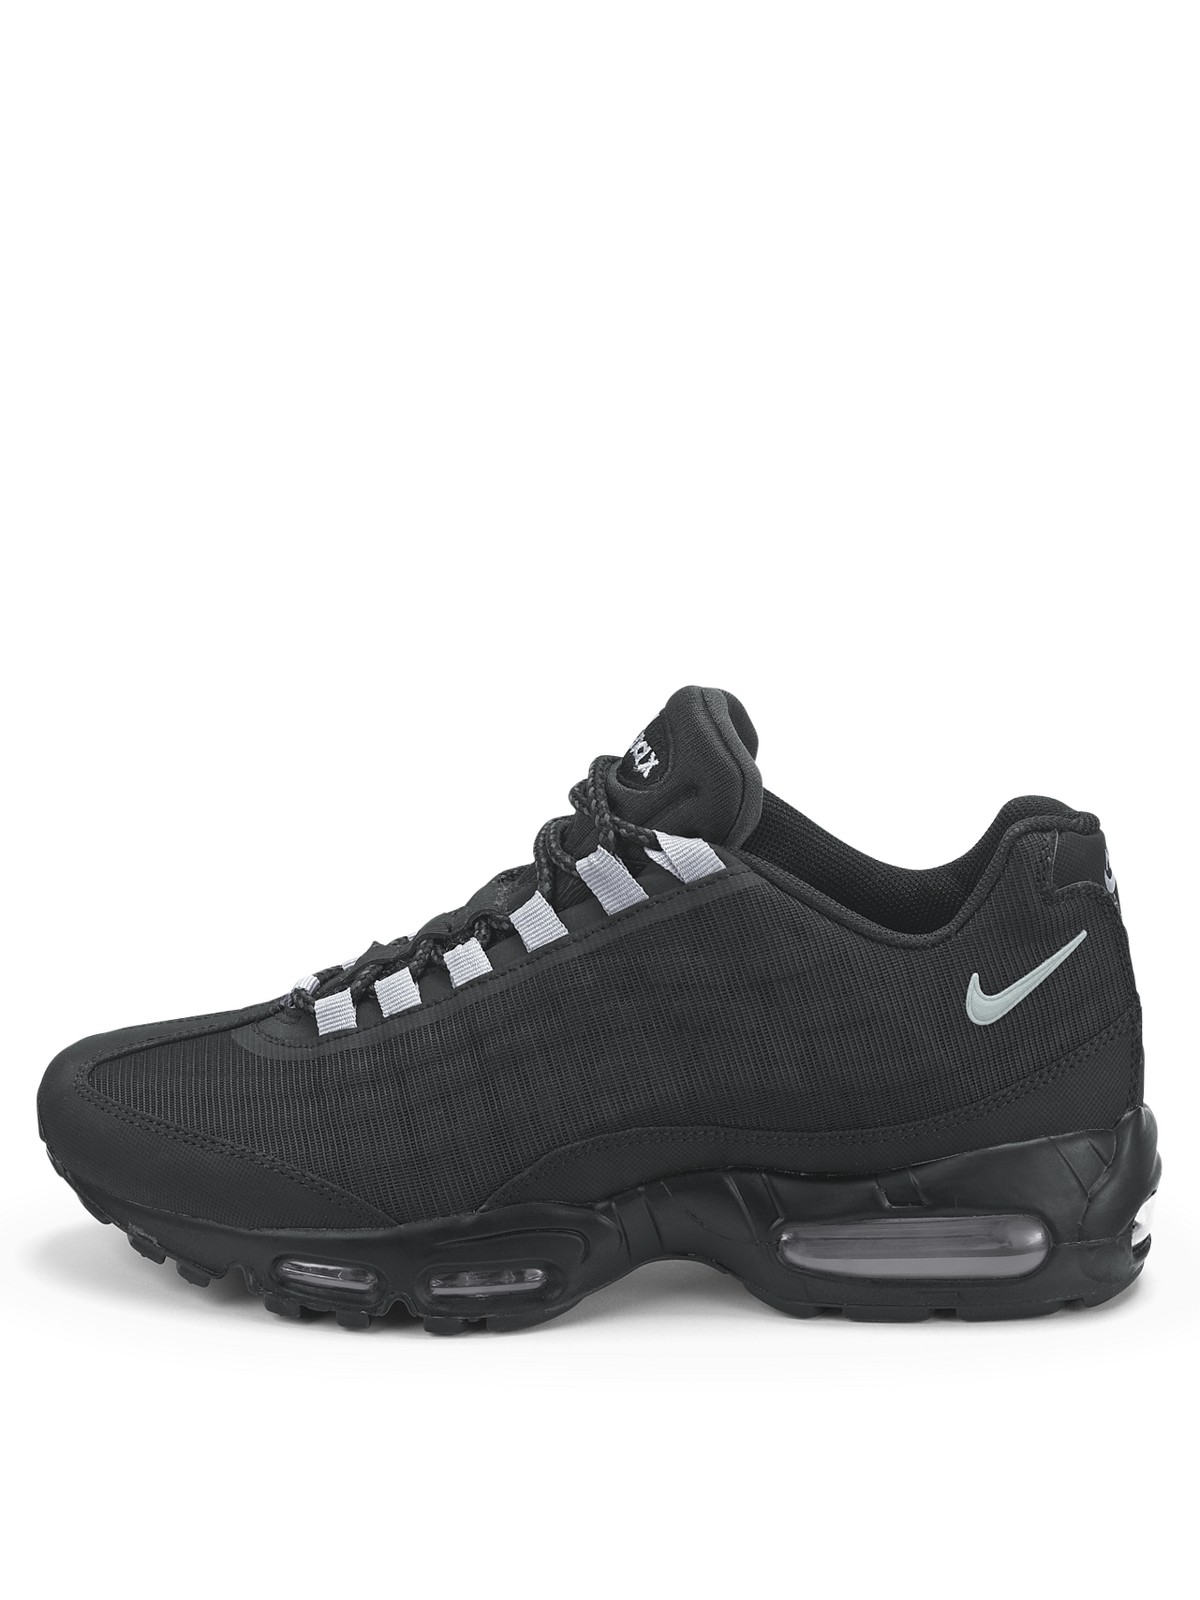 uk availability 7f43c 4ab05 prm max tape air 95 Homme nike XxwIq75EW